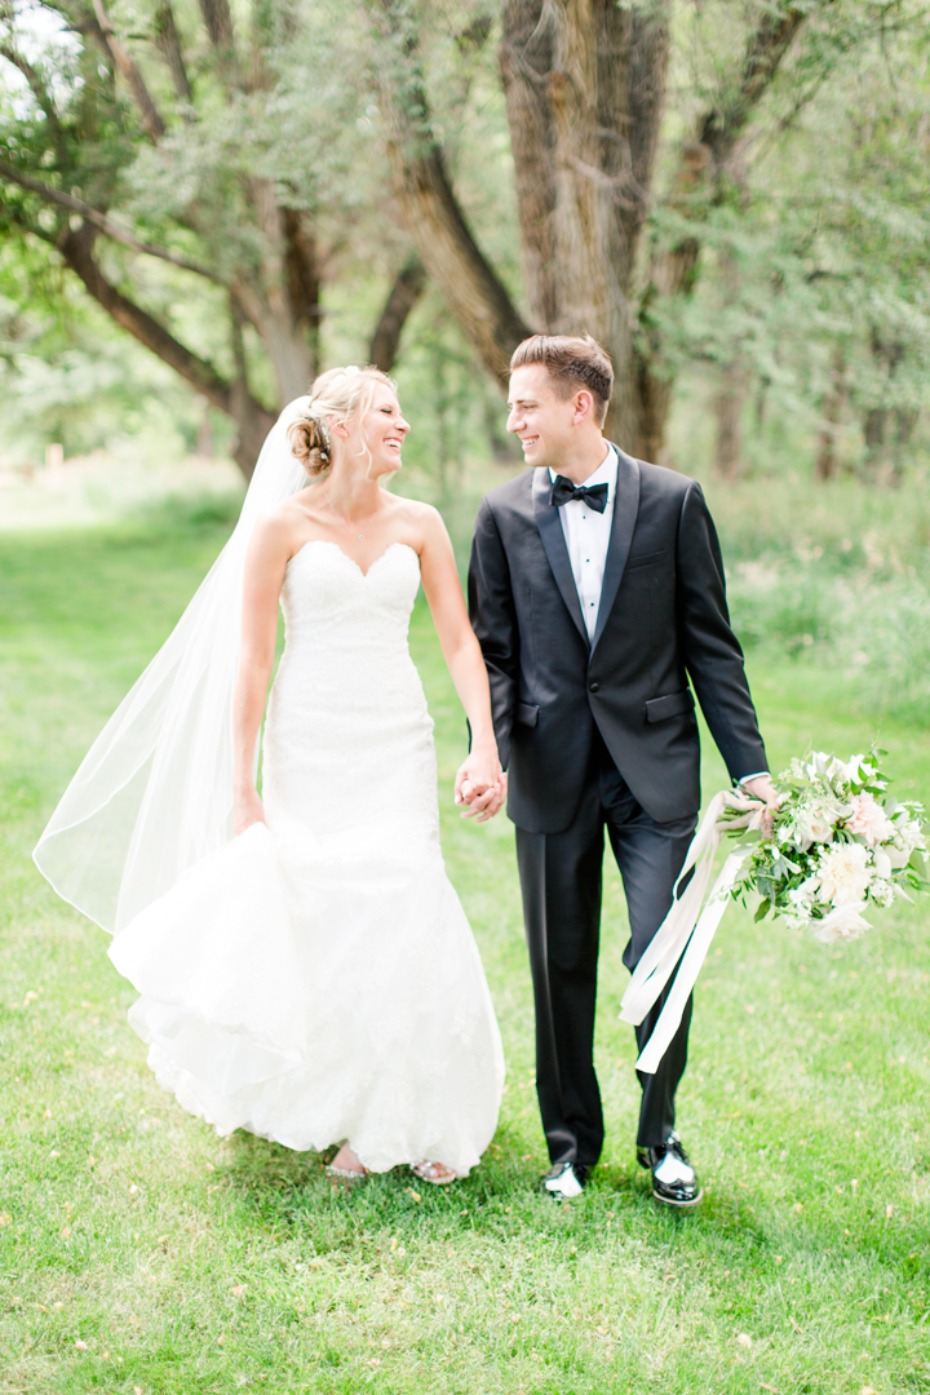 Garden wedding at Denver Botanic Gardens